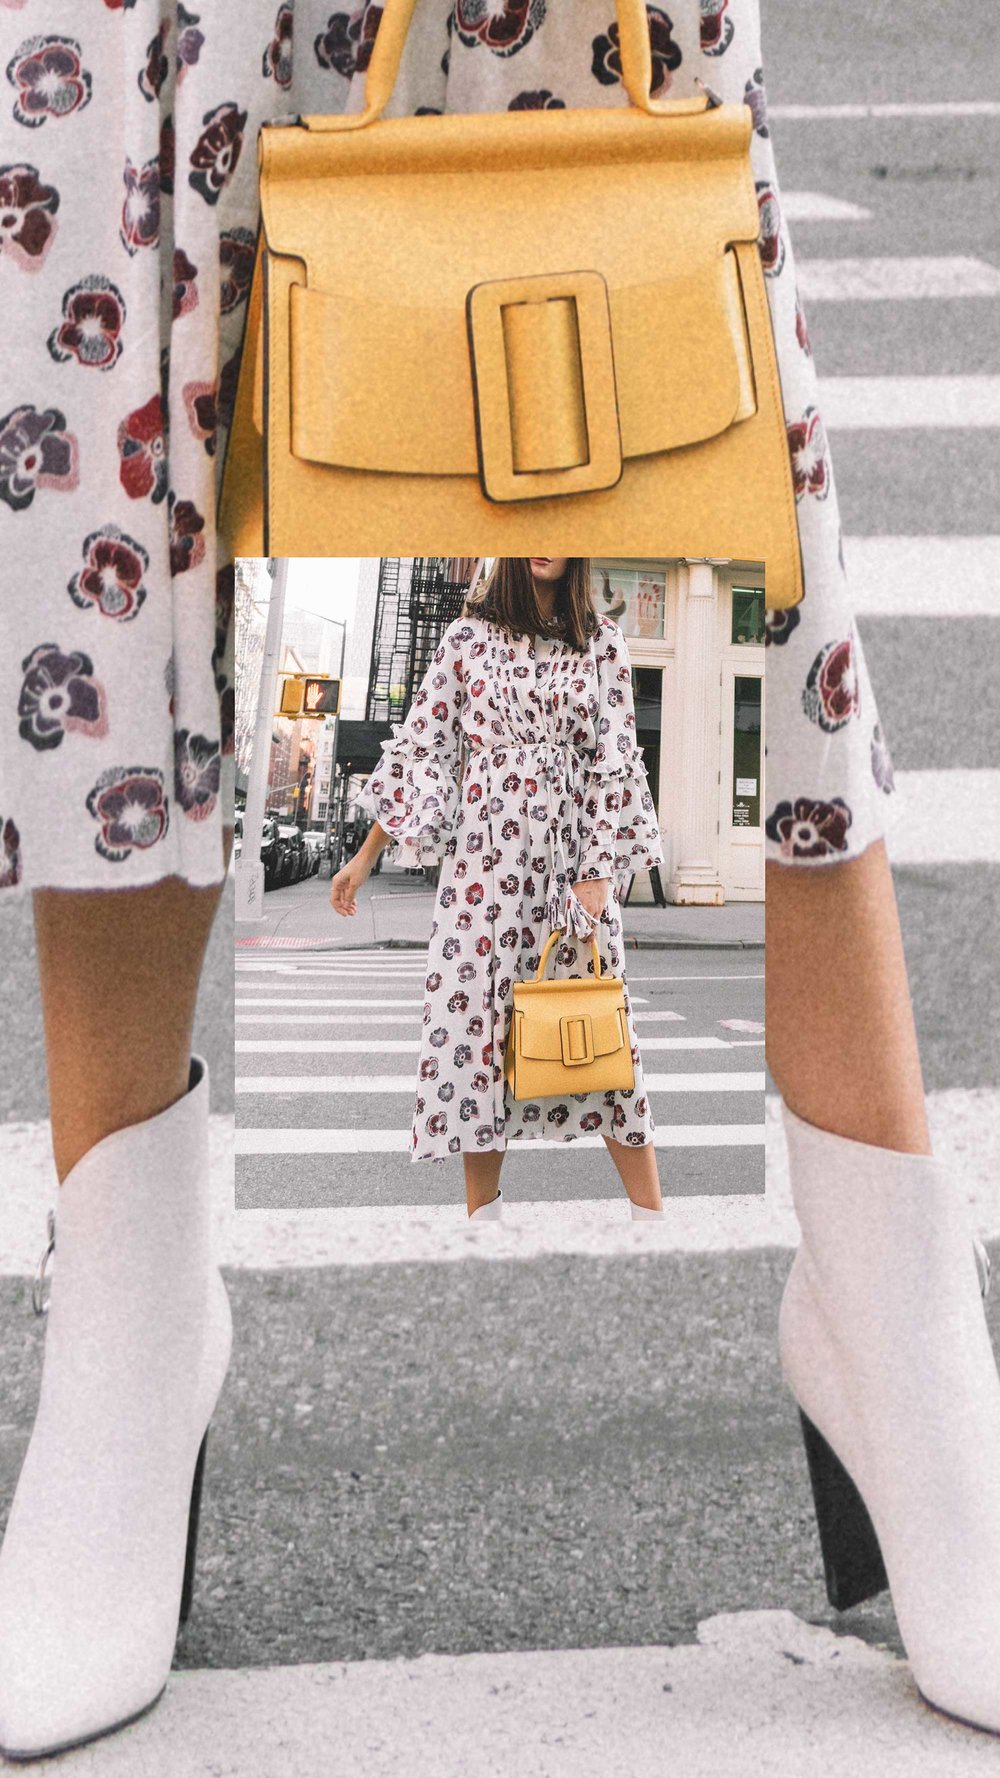 Madewell x Karen Walker Floral Fantasia Ruffled Dress and BOYY Karl 24 Bag soho new york fashion week outfit11.jpg